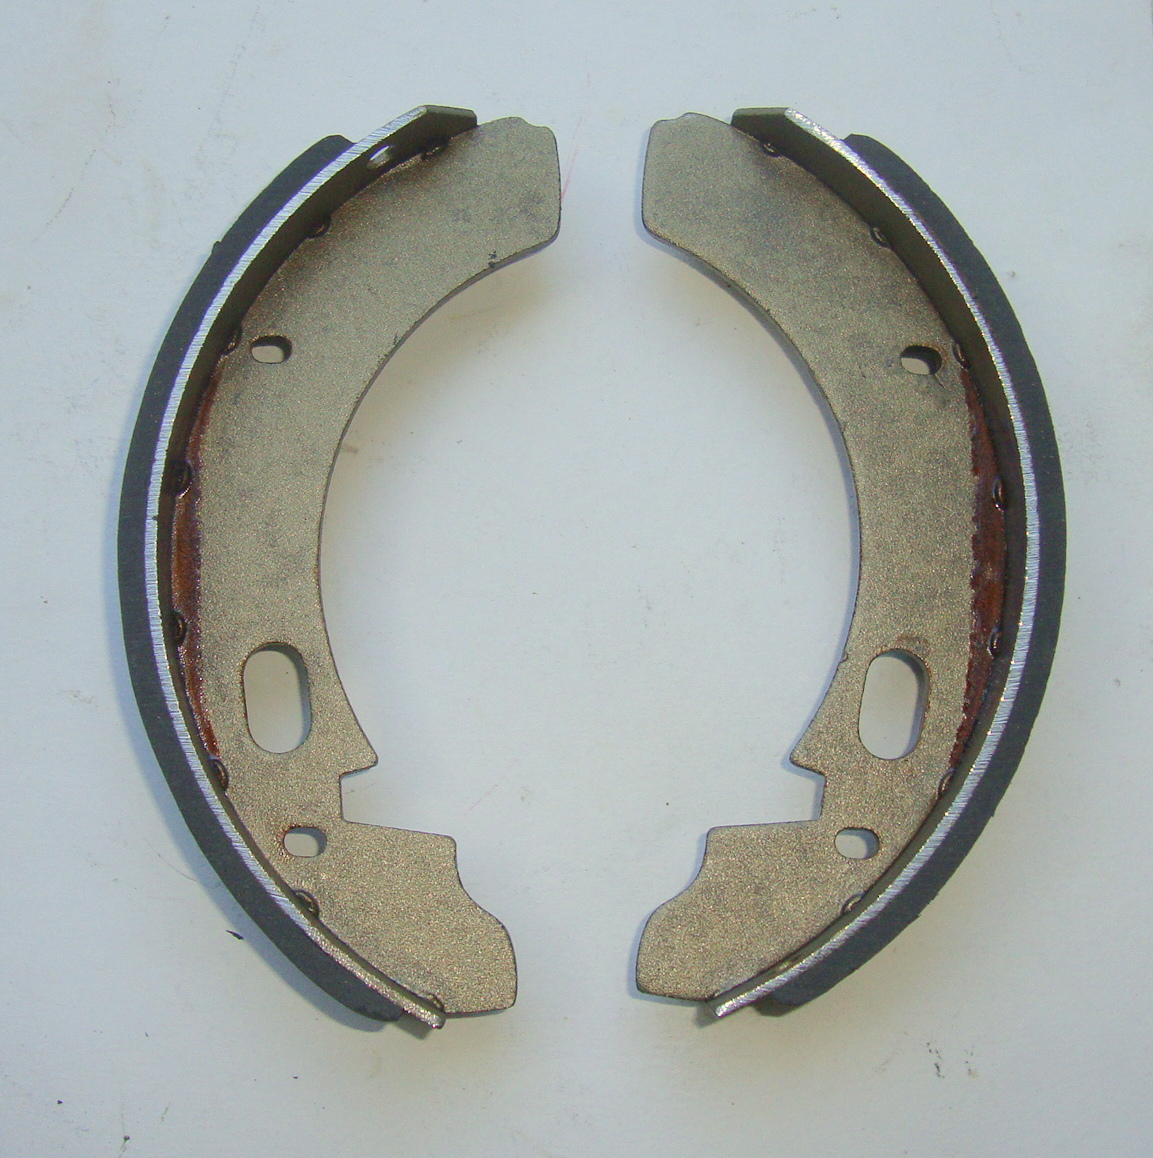 Brake shoes, NEWFREN, Ape AC / AD / AE / AE0 / Pentaro, GF 0115